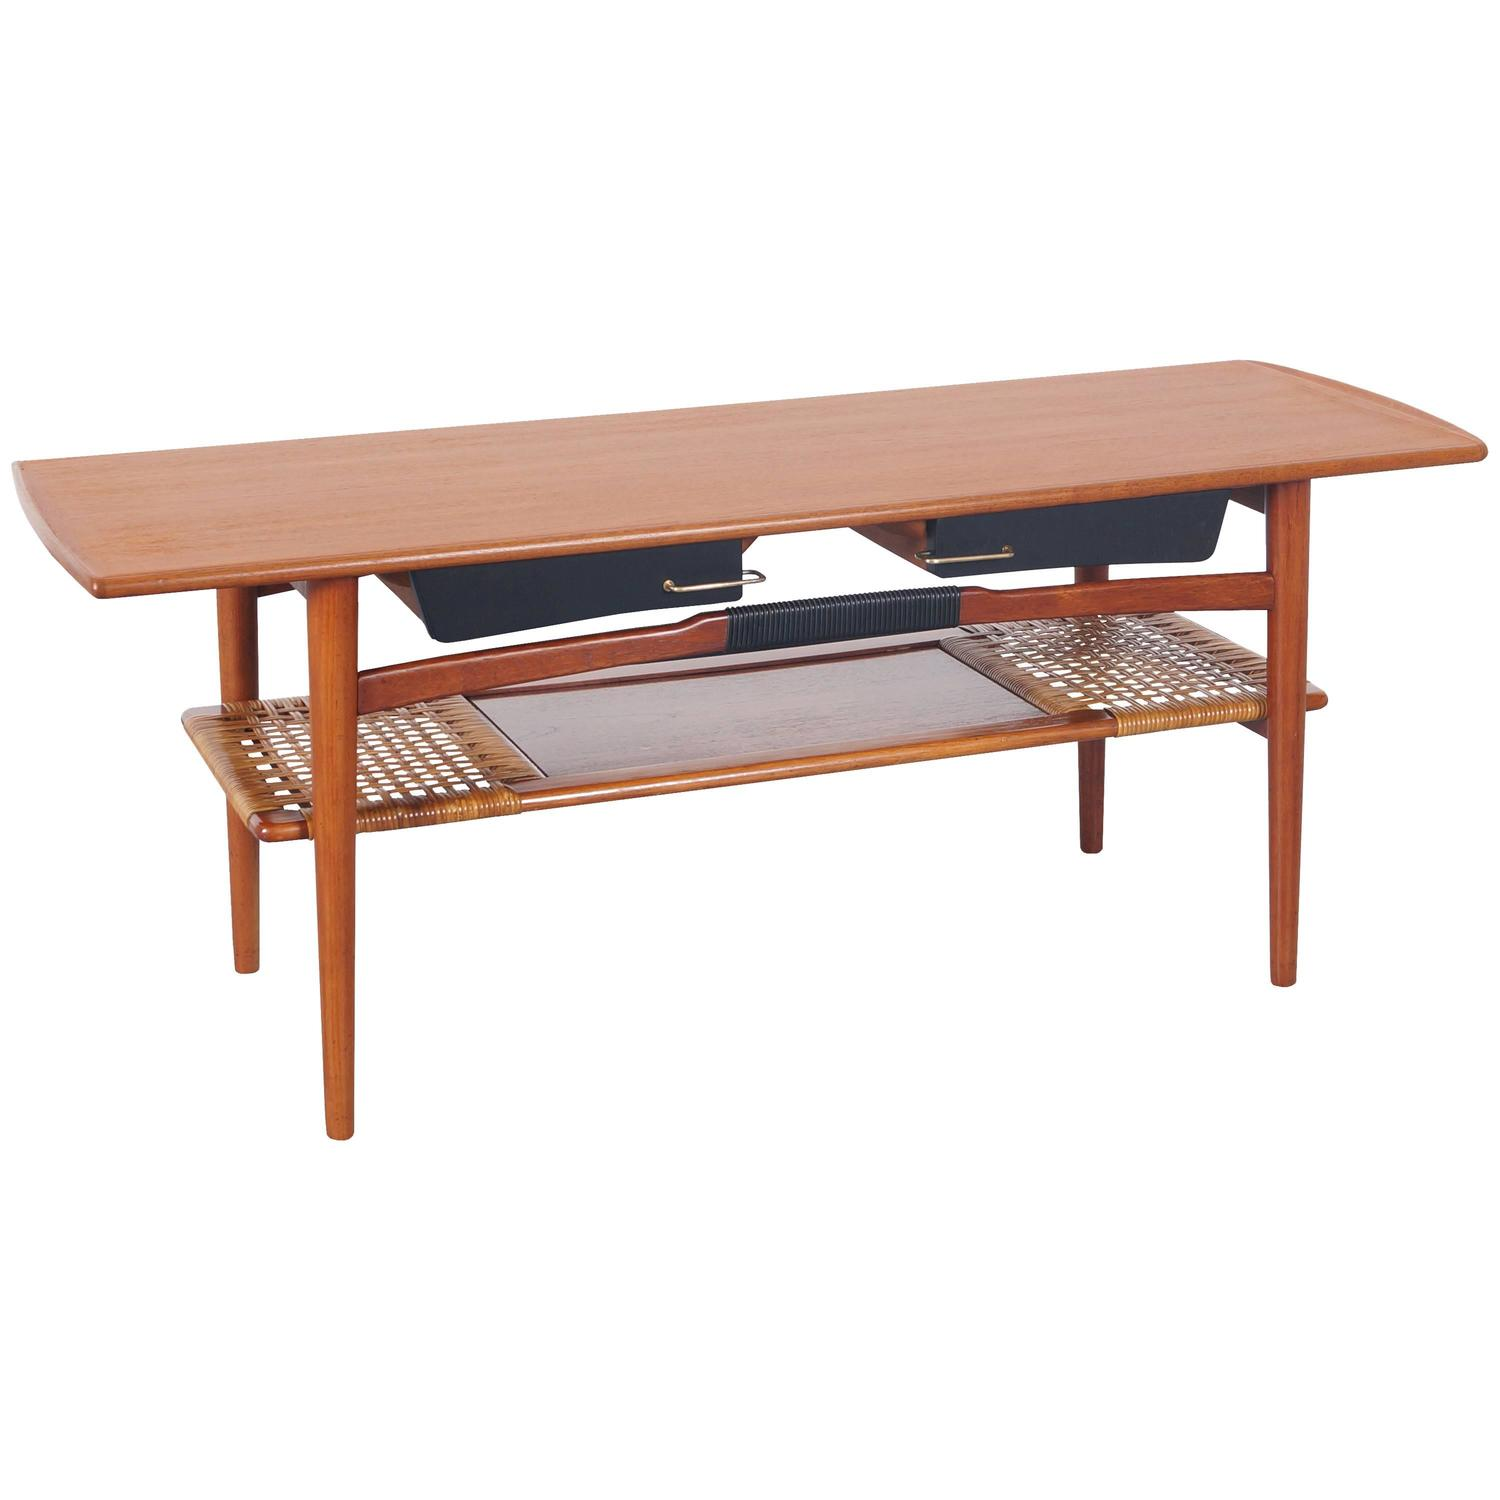 danish modern teak coffee table for sale at 1stdibs. Black Bedroom Furniture Sets. Home Design Ideas